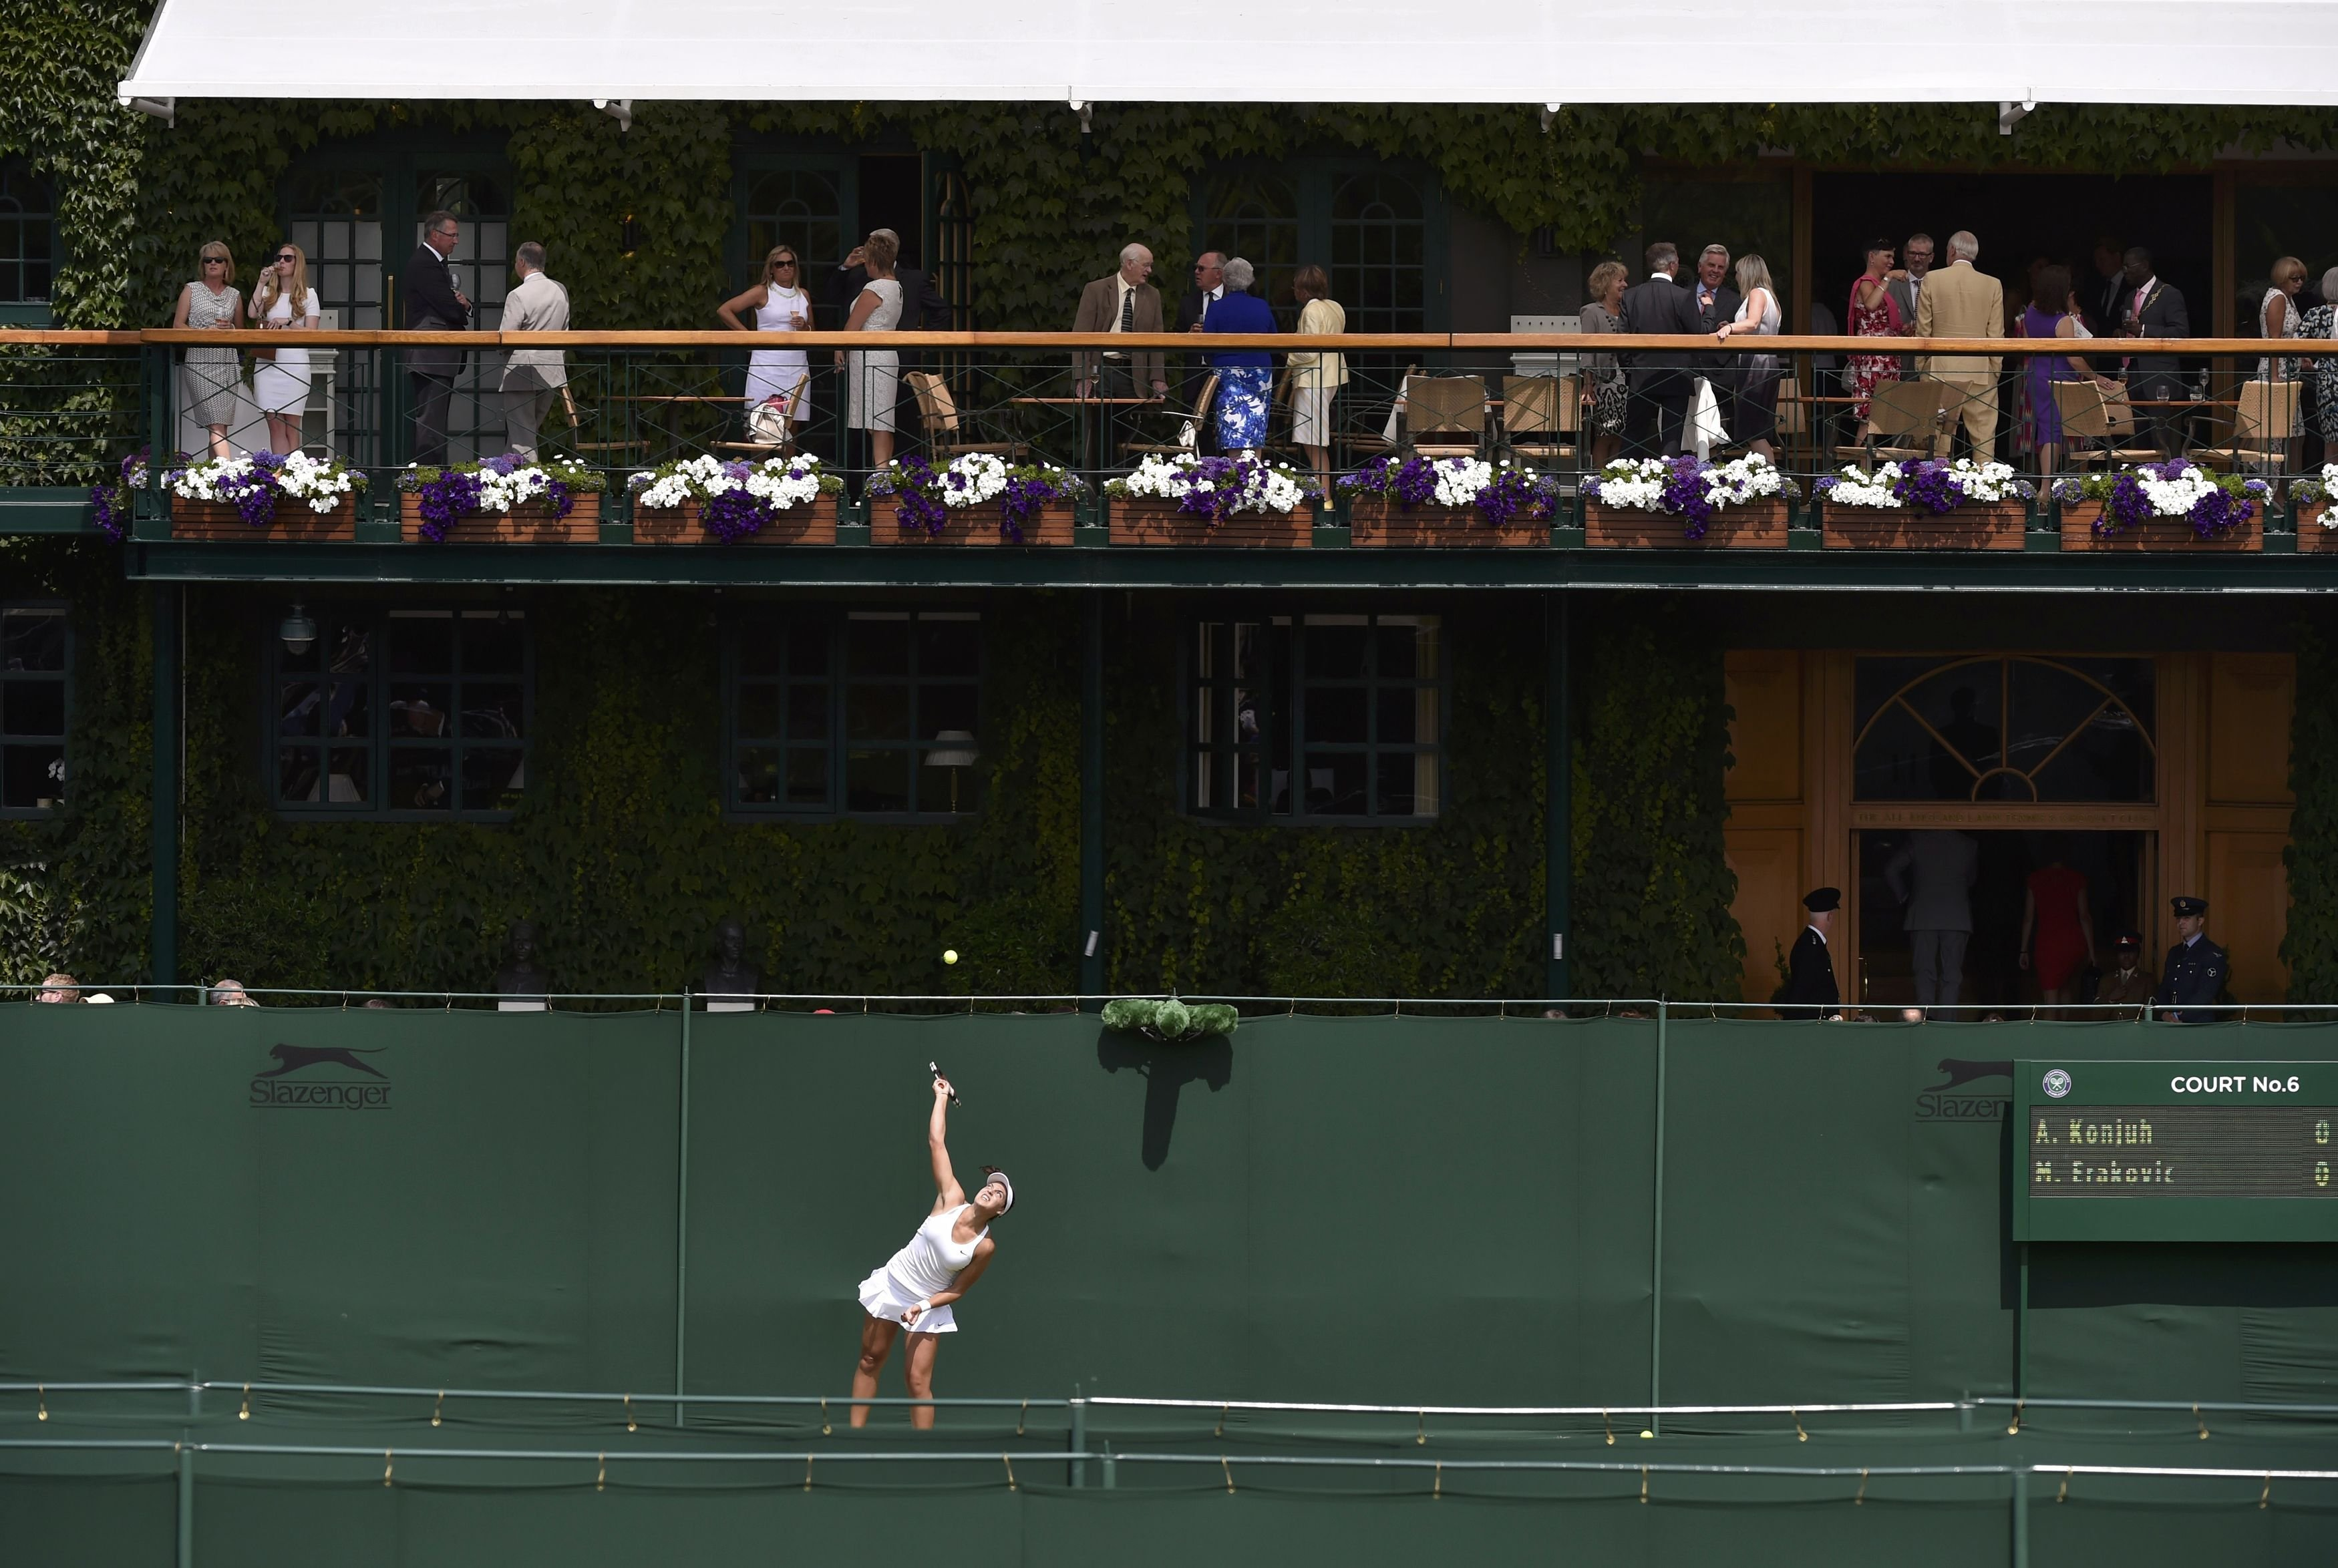 Marina Erakovic of New Zealand serves to Ana Konjuh of Croatia during their women's singles tennis match while spectators enjoy the game at the Wimbledon Tennis Championships, in London on June 23, 2014.